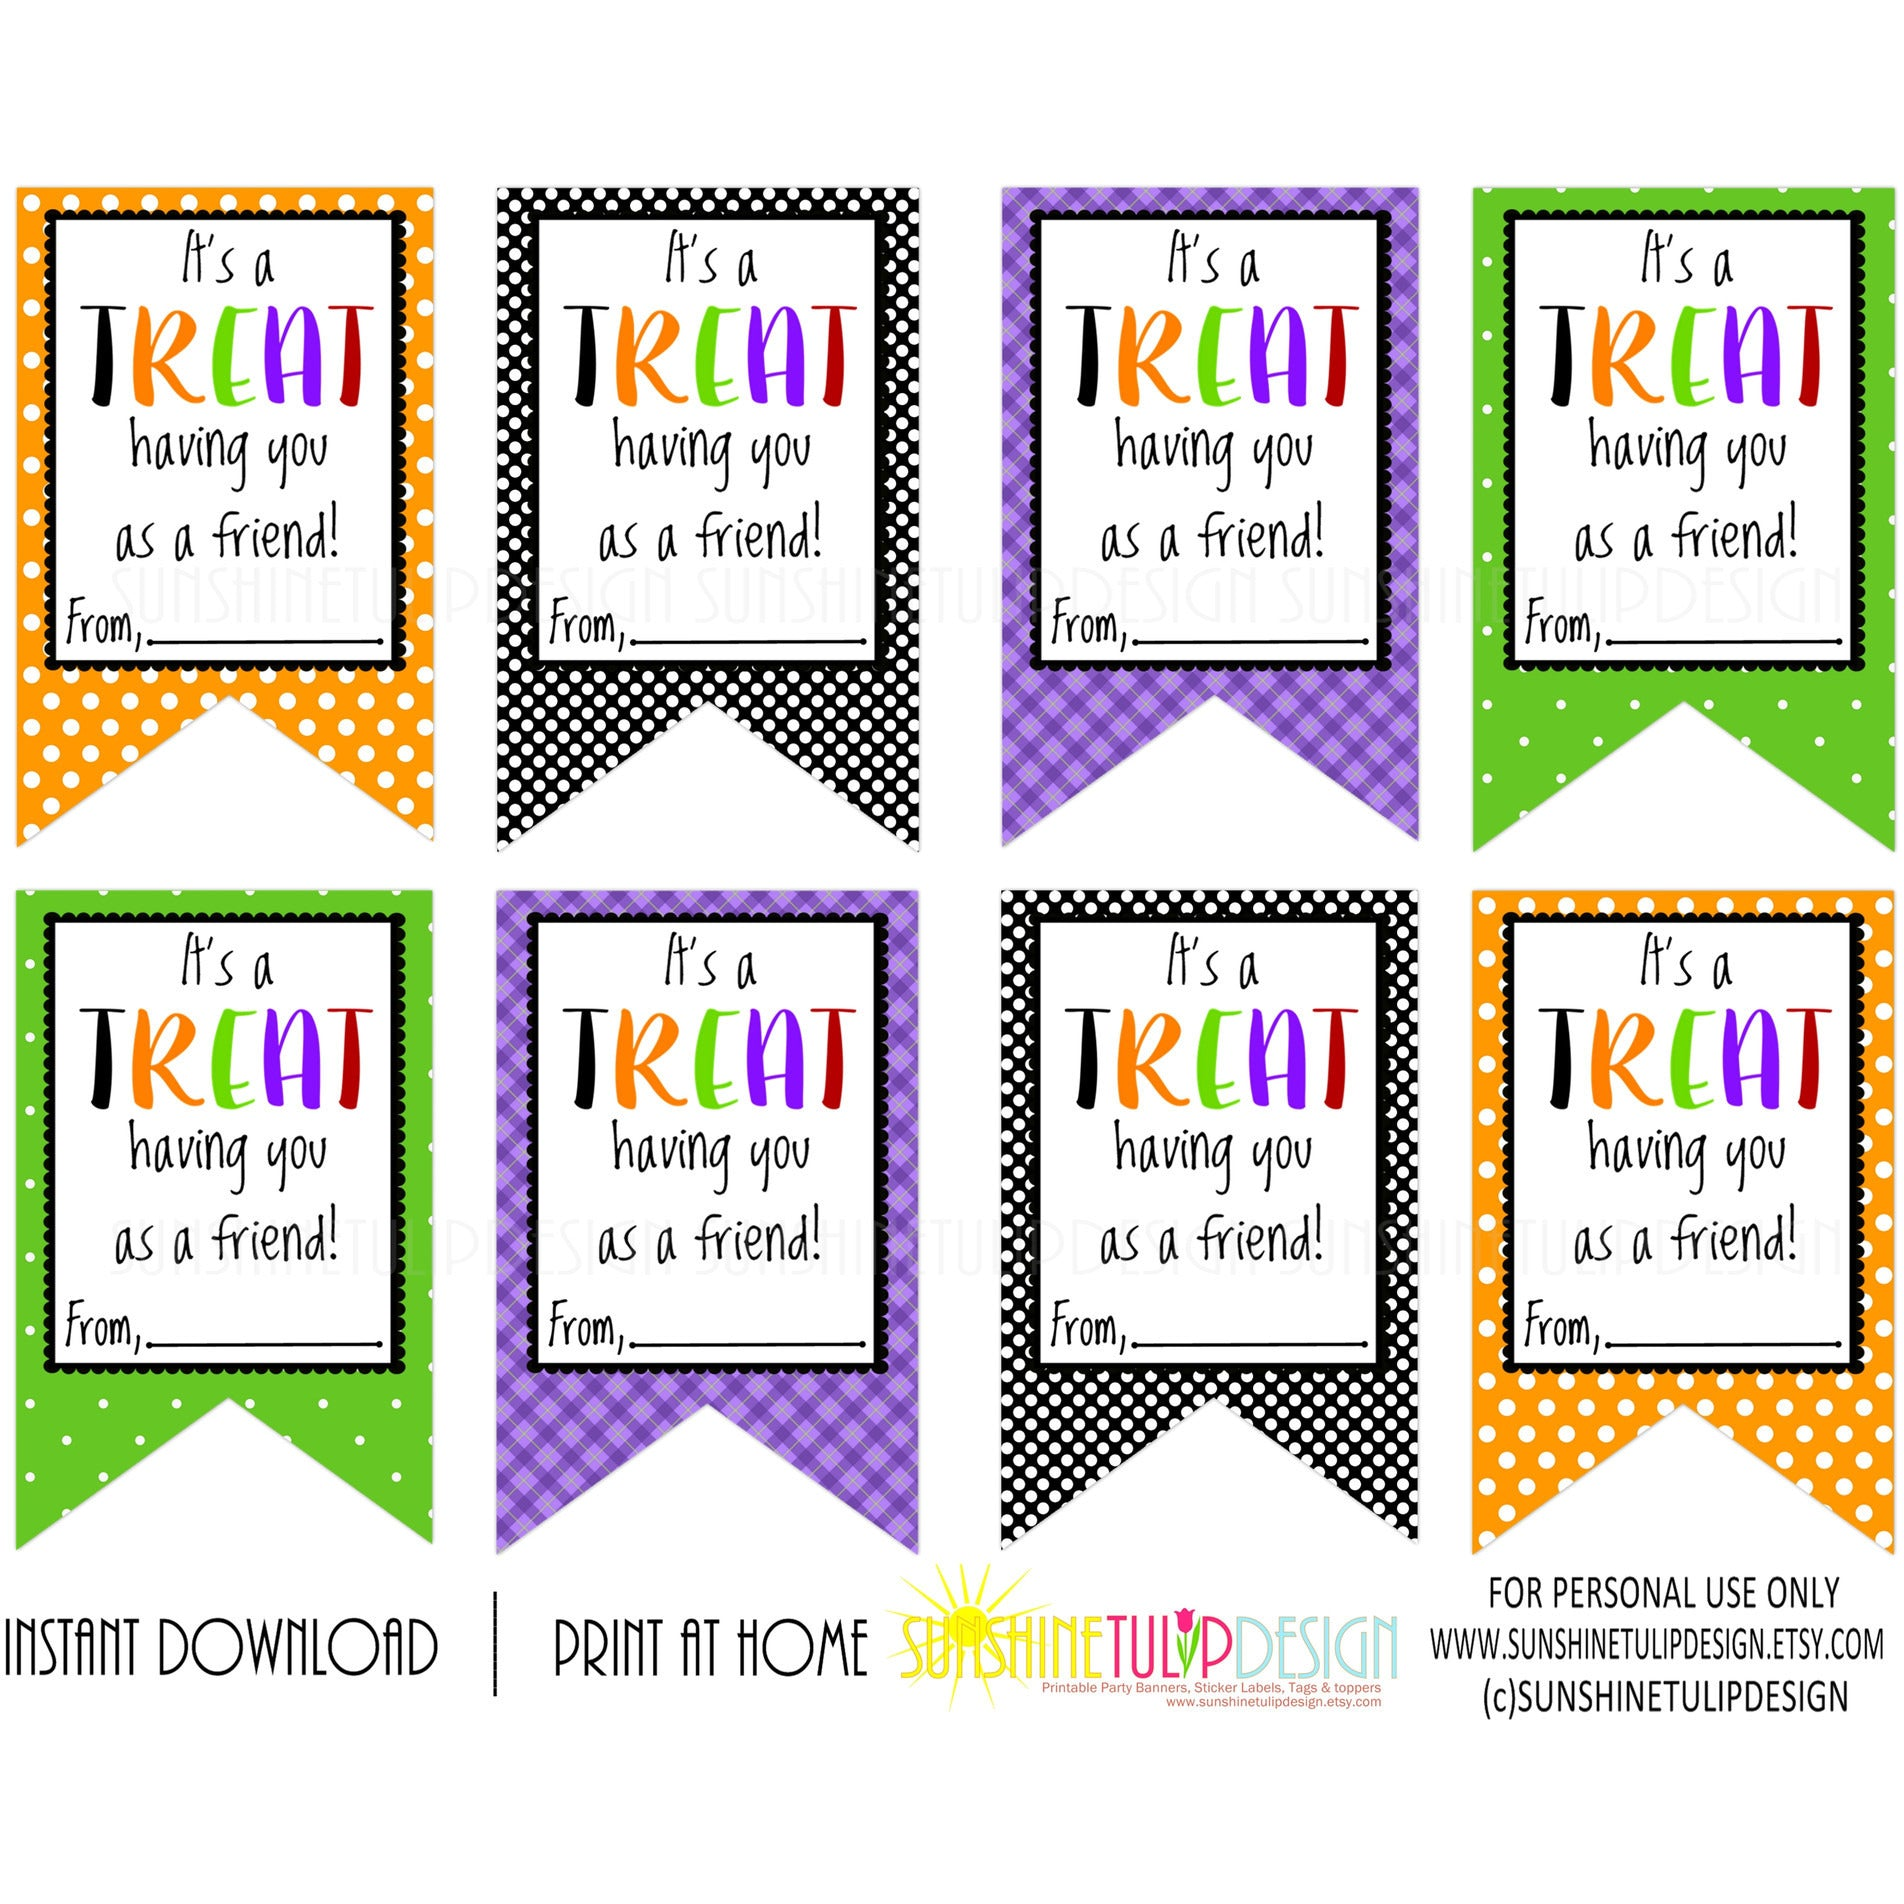 image relating to Free Printable Halloween Gift Tags identify Printable Halloween Reward Tags, Its a Address Getting By yourself as a Mate Halloween Present Tags by means of SUNSHINETULIPDESIGN